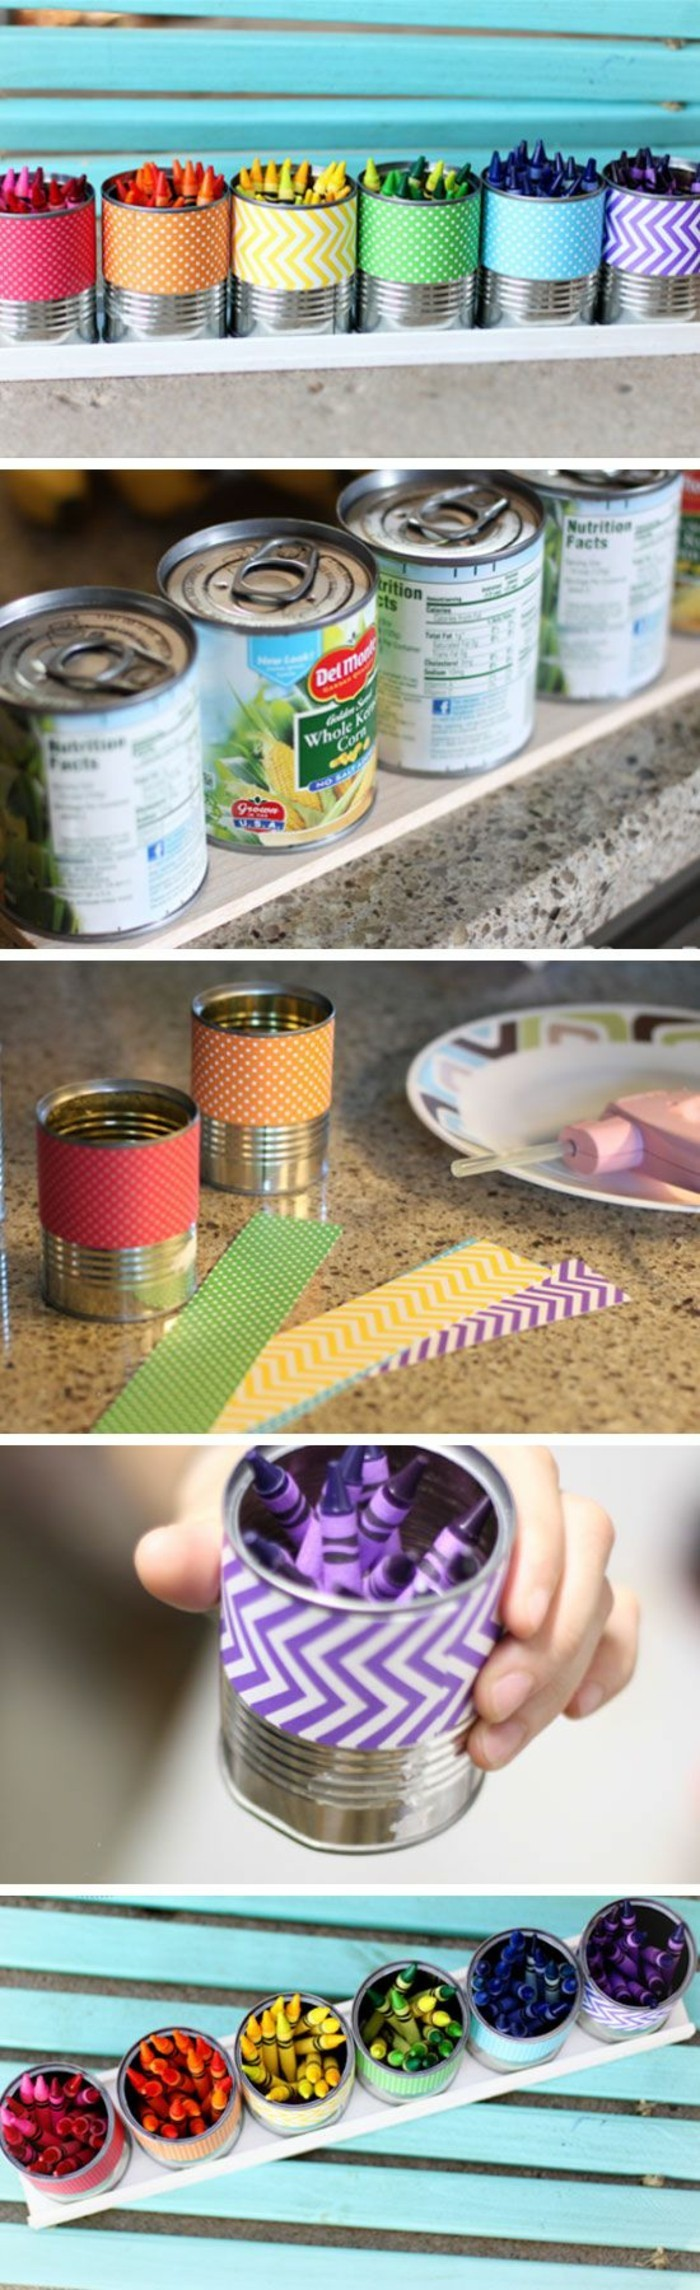 tin can crafts, six aluminium cans, decorated with paper in different colors, containing crayons in corresponding colors